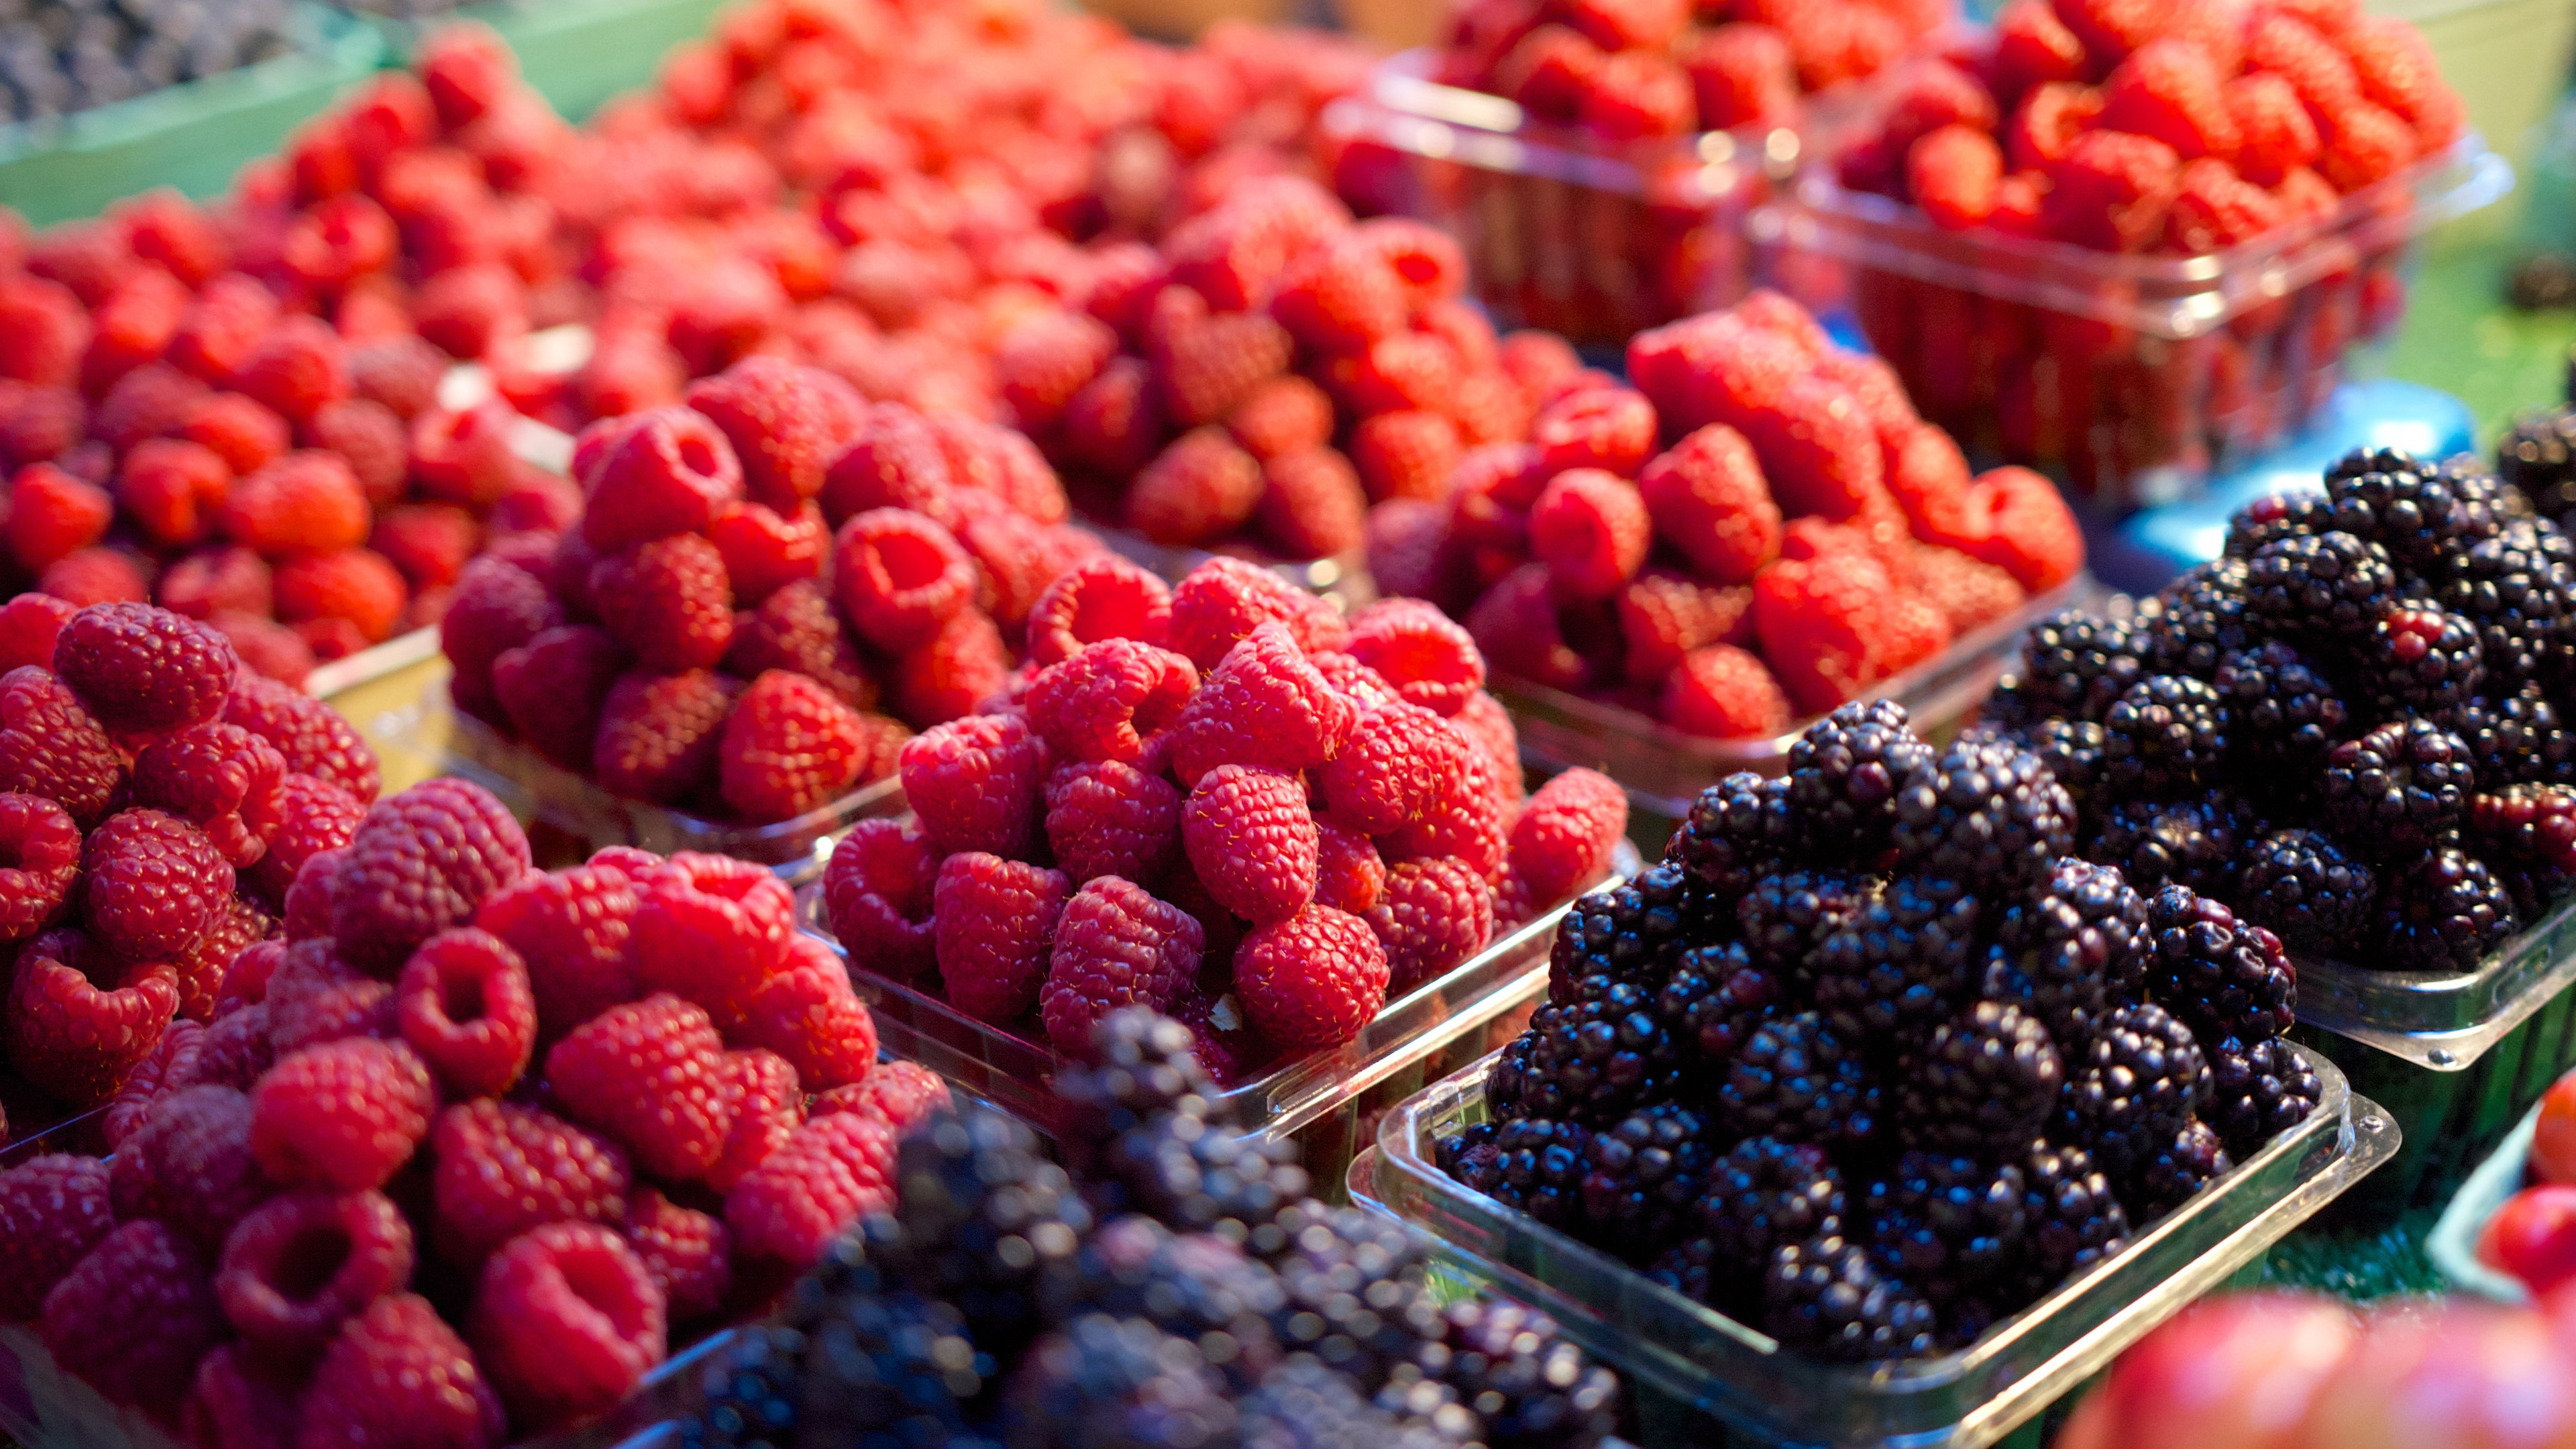 fresh market fruit makes an inexpensive summer treat. you can make homemade or semi-homemade pies, cobblers, and crisps.